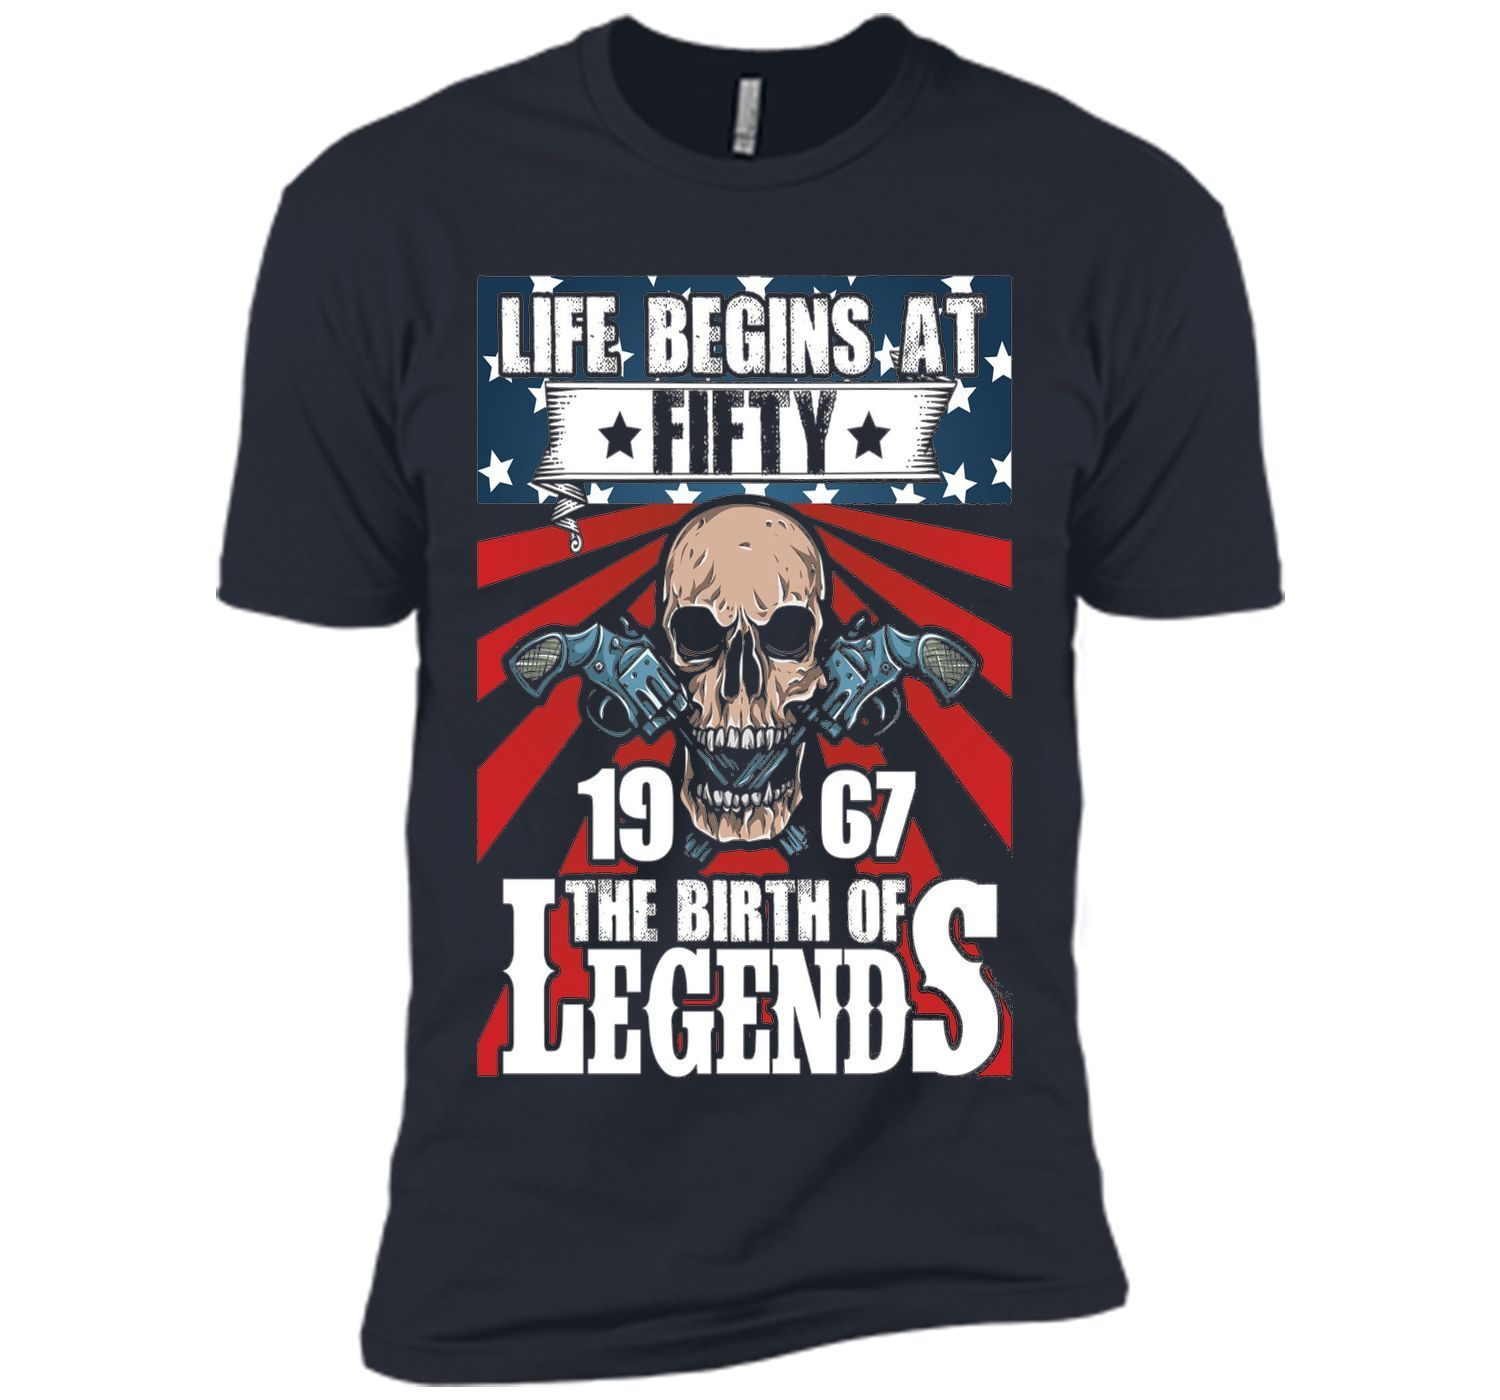 Life Begins At Fiffty, 1967, The Birth Of Legends T-shirt